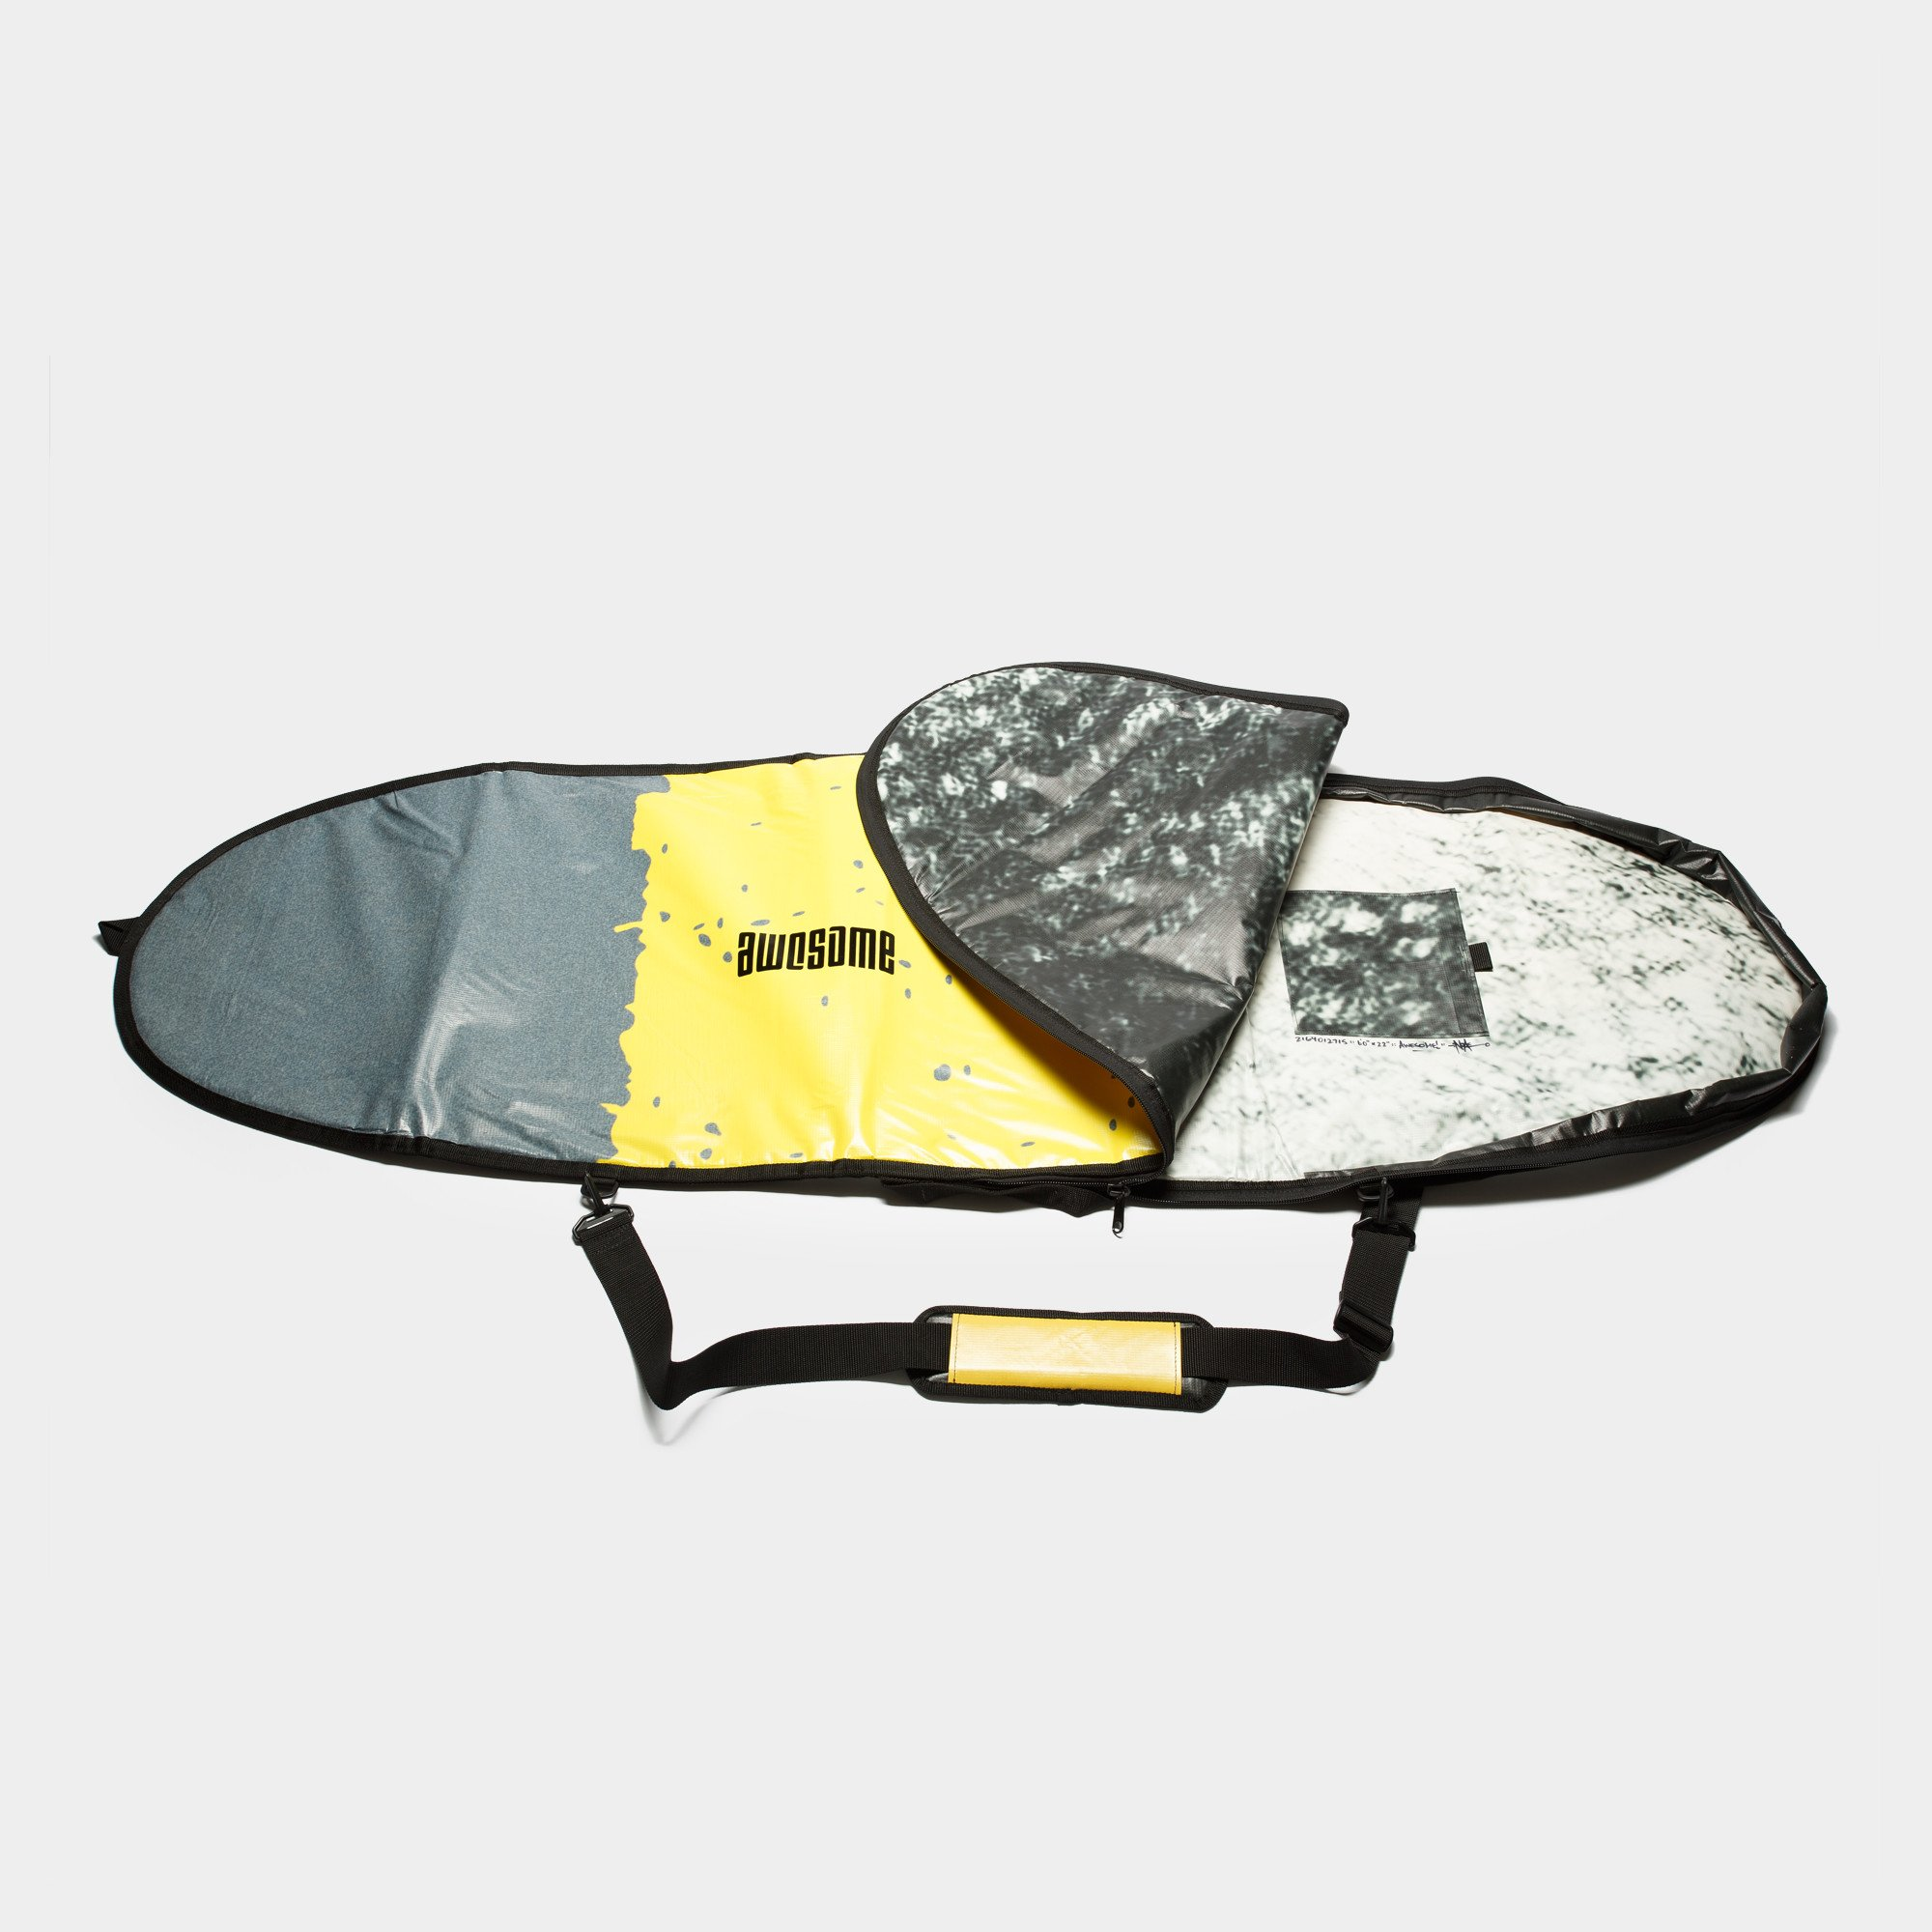 6'0 Awesome x The Progress Project Boardbag - Grey